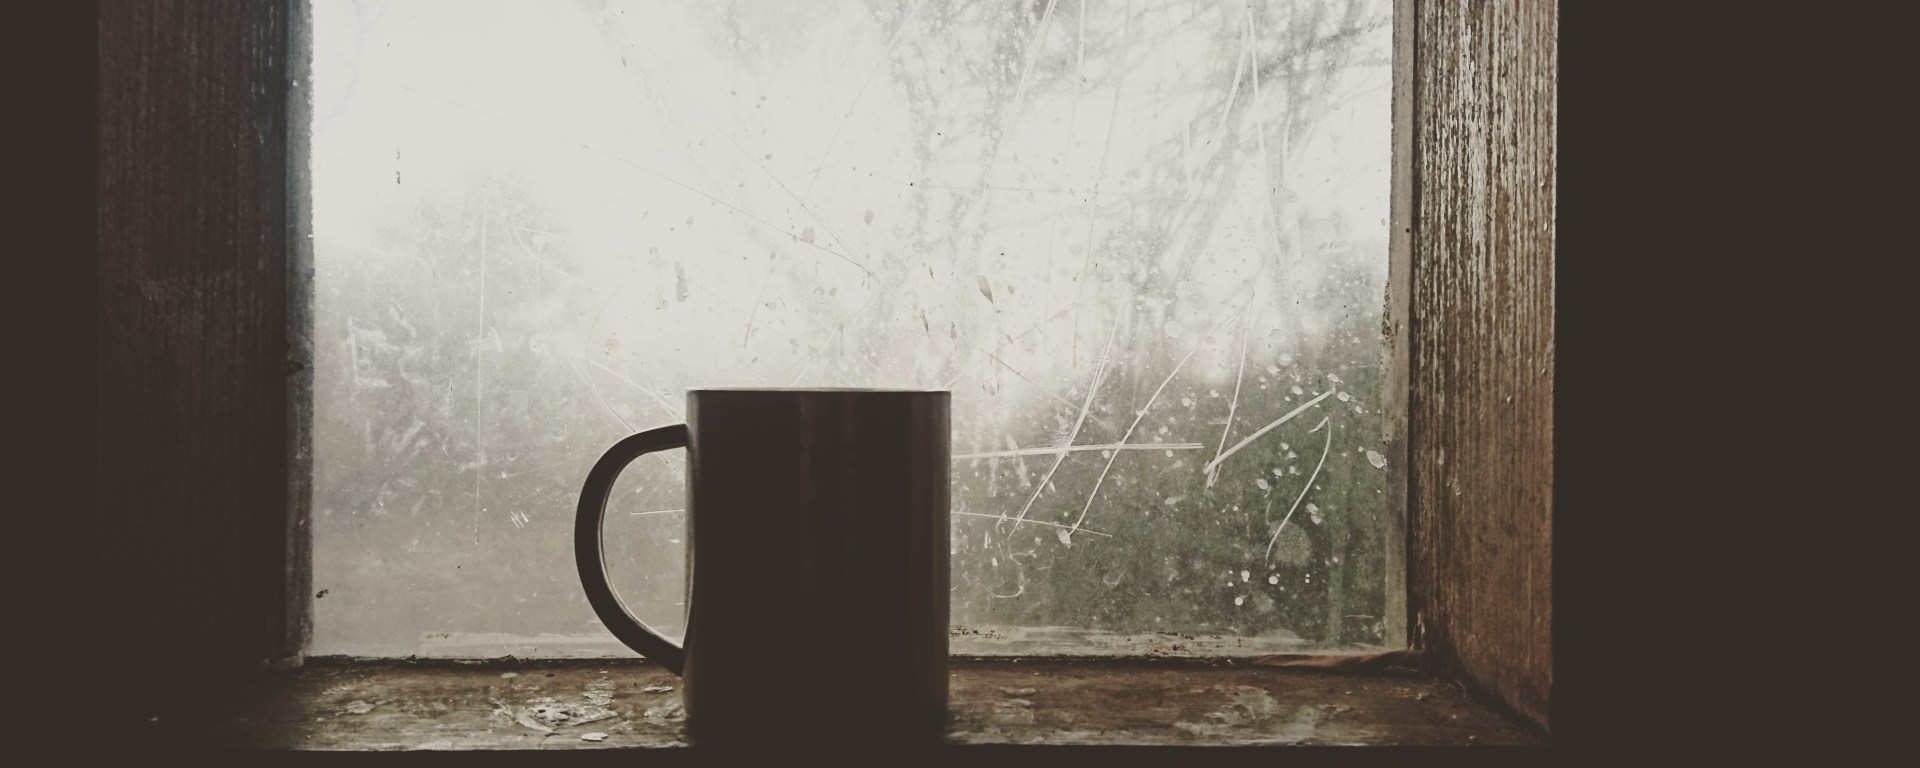 A coffee mug sits on a frosty window sill.